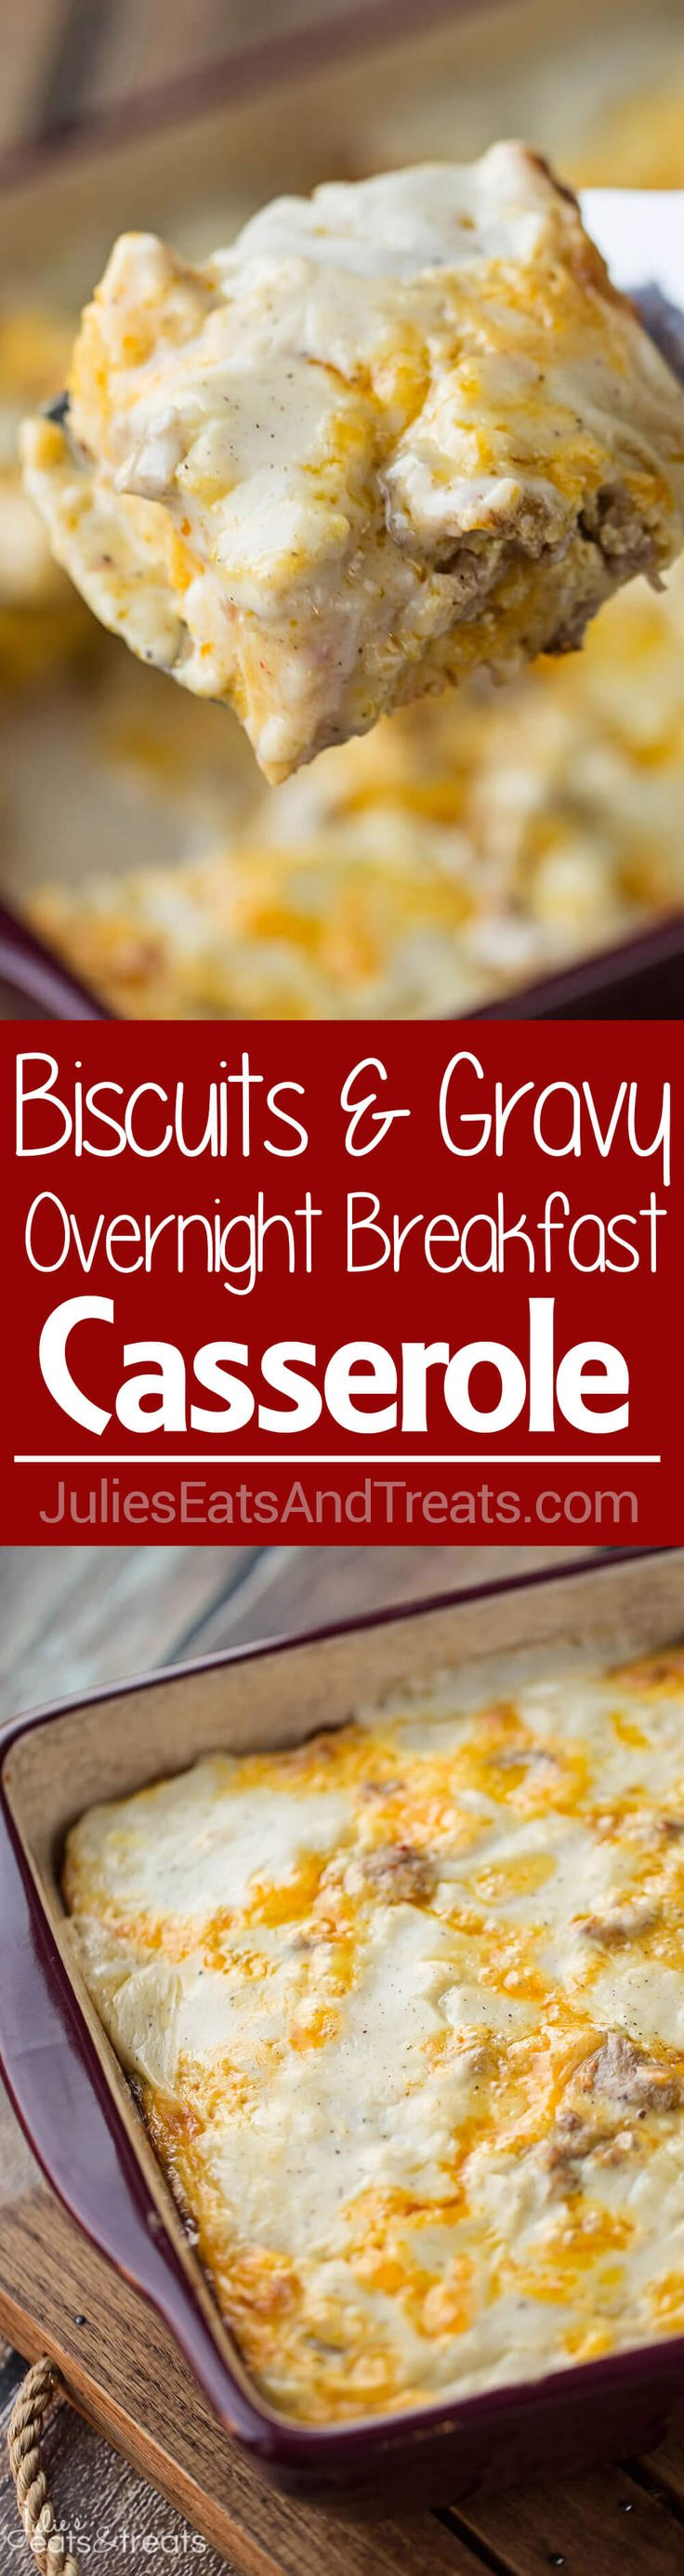 Biscuits and Gravy Overnight Breakfast Casserole ~ Comforting, Hearty Breakfast Casserole That is Prepared the Night Before and Baked in the Morning! Biscuits Loaded with Gravy, Sausage, Eggs and Cheese! ~ http://www.julieseatsandtreats.com